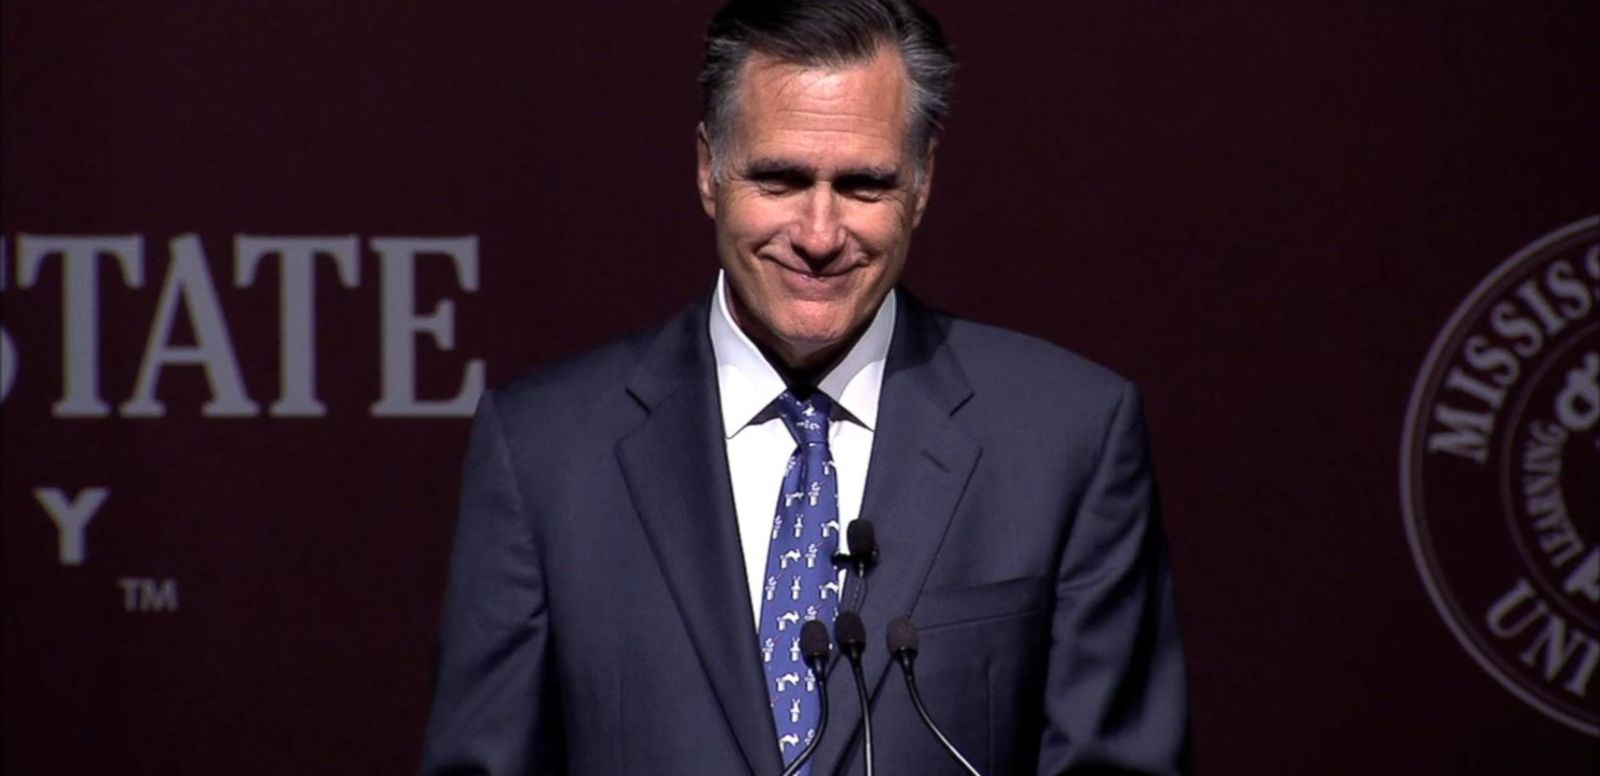 VIDEO: The former Republican presidential nominee cracks jokes in speech to Mississippi State University.